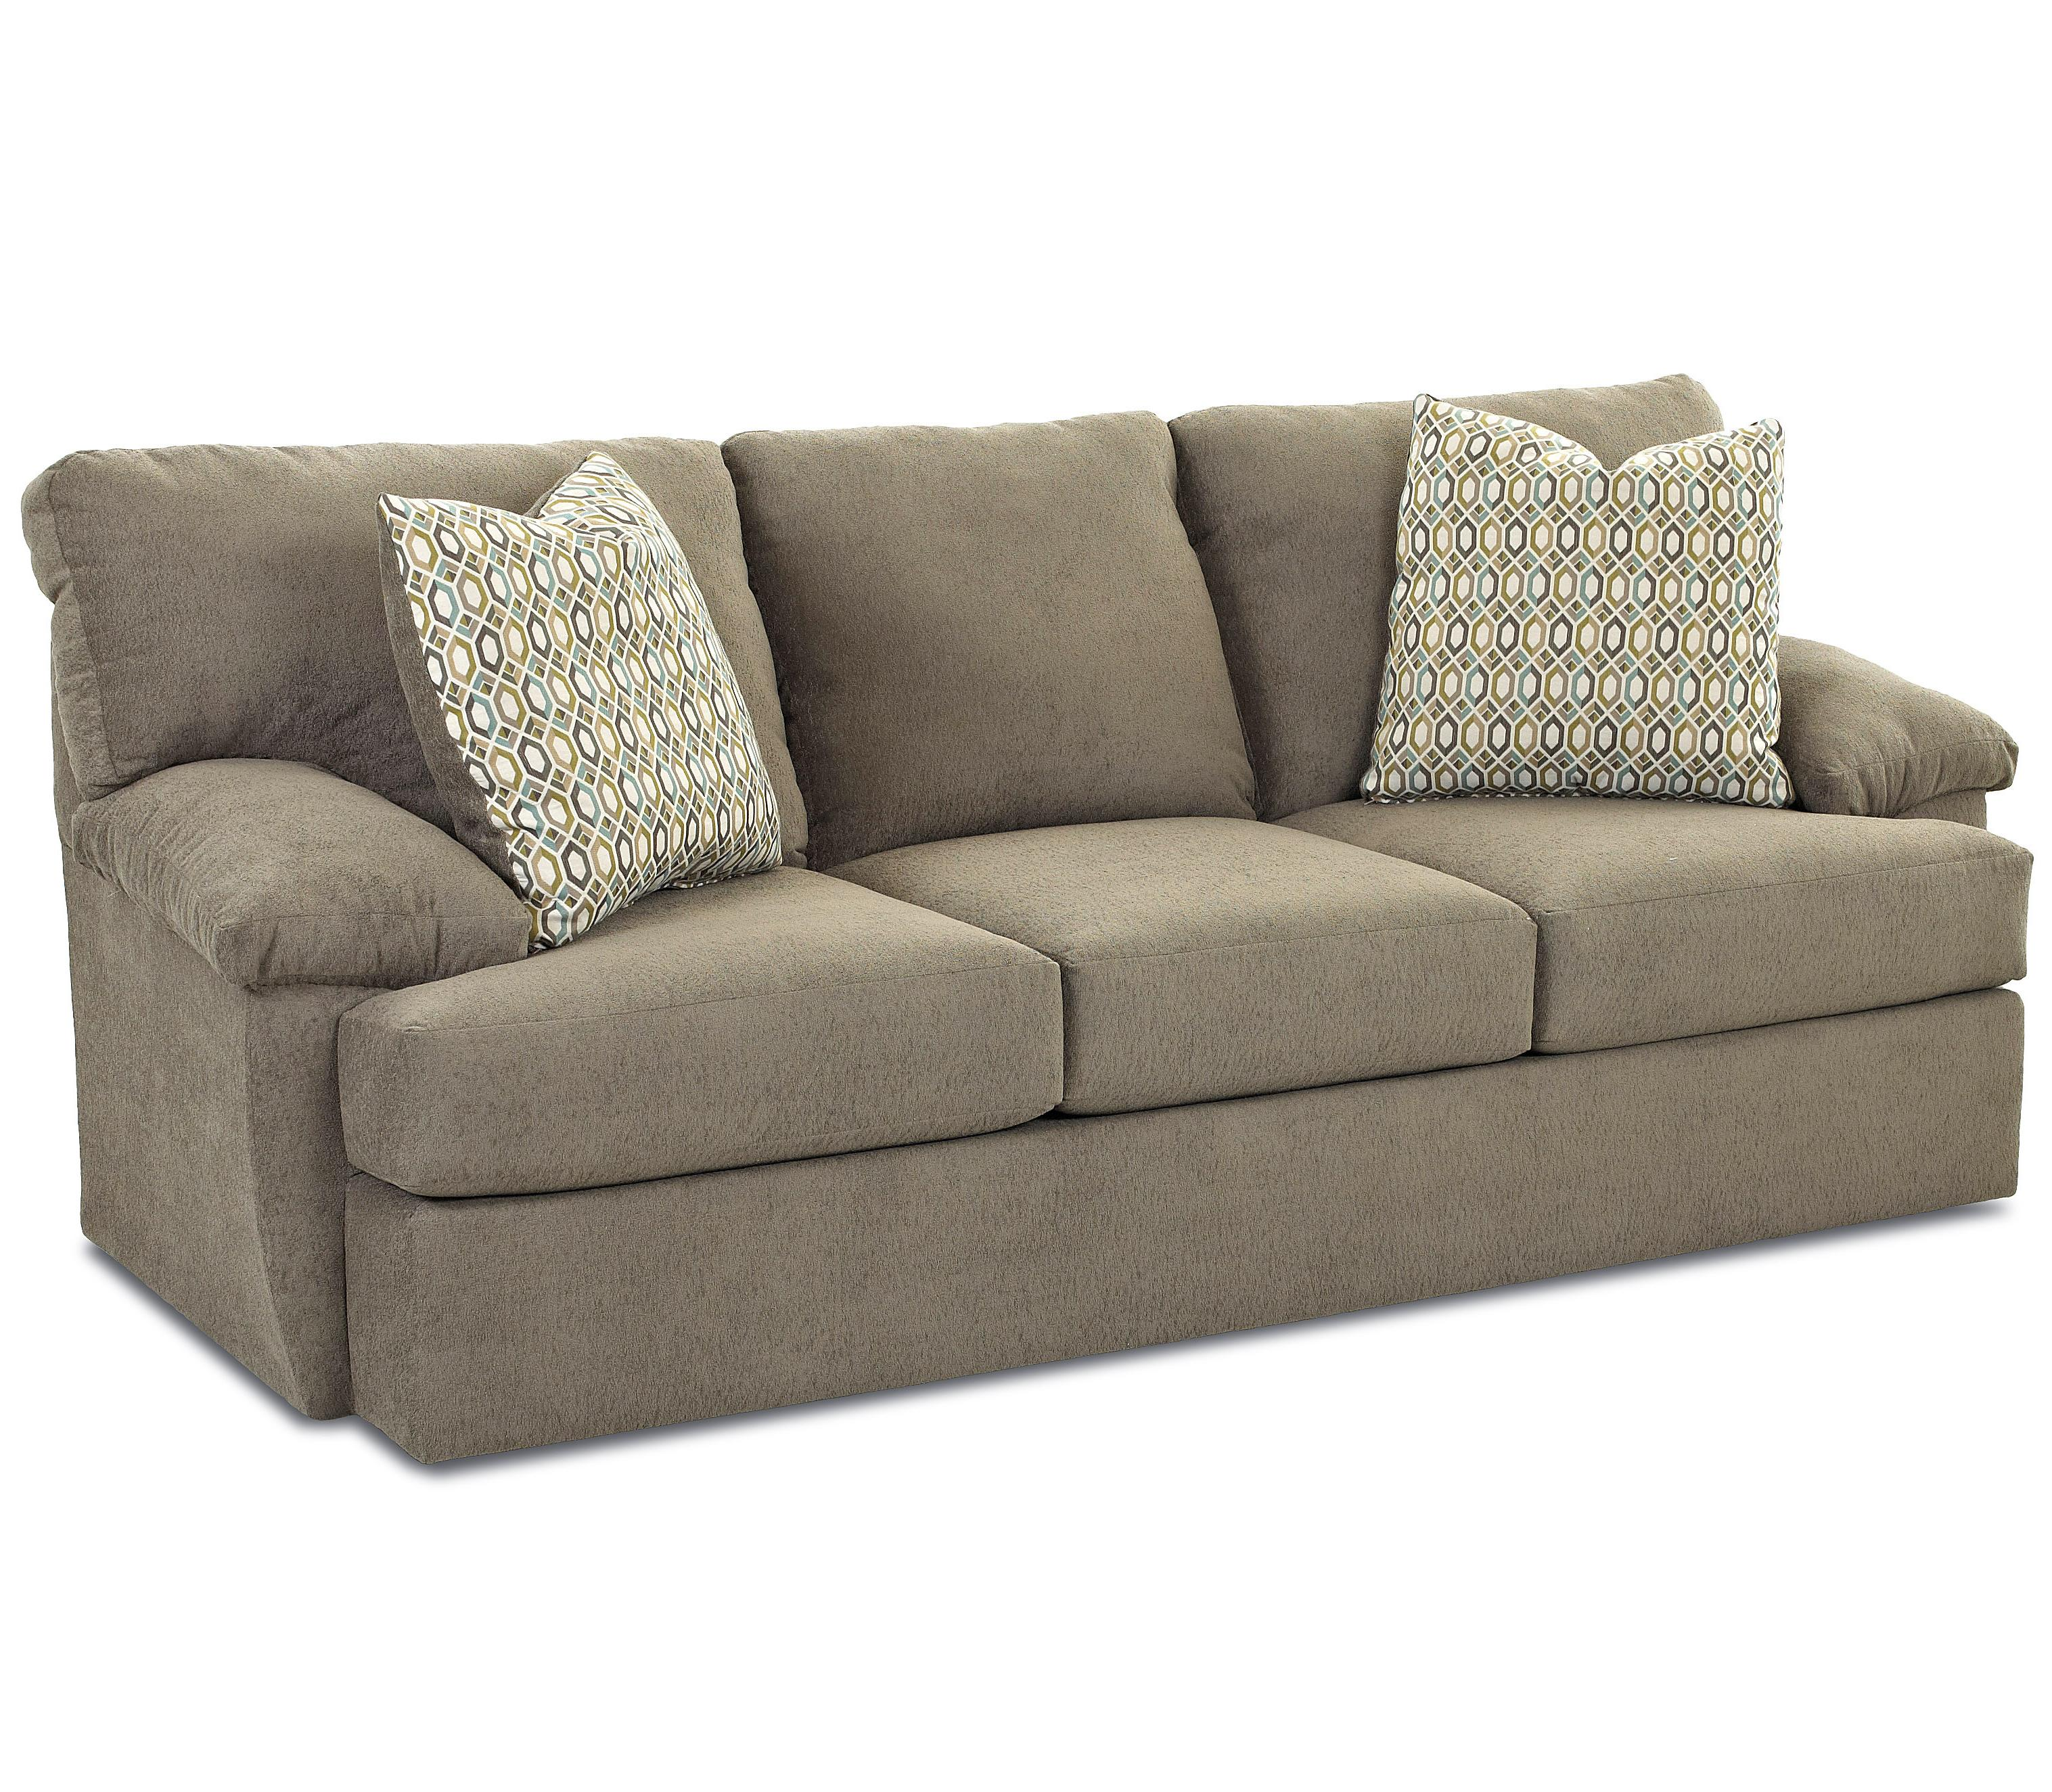 Casual Sofa With Attached Pillow Back And Foam Cushion Seat